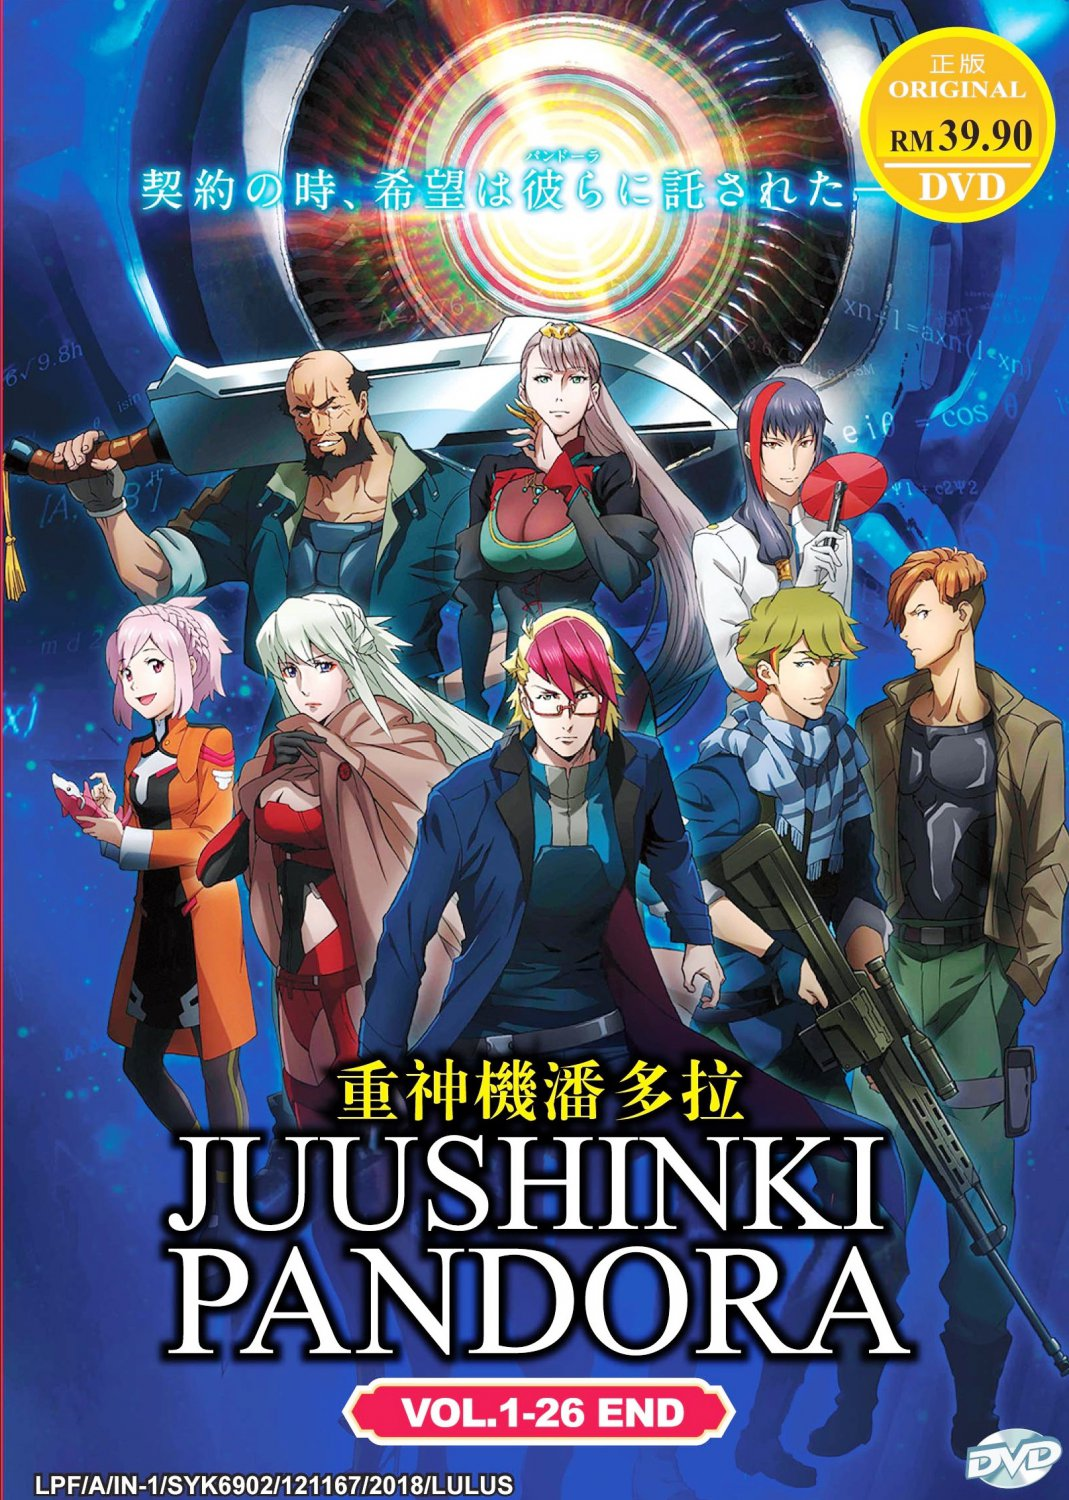 DVD Juushinki Pandora Vol.1-26 End ������ Japanese Anime Eng Sub region All